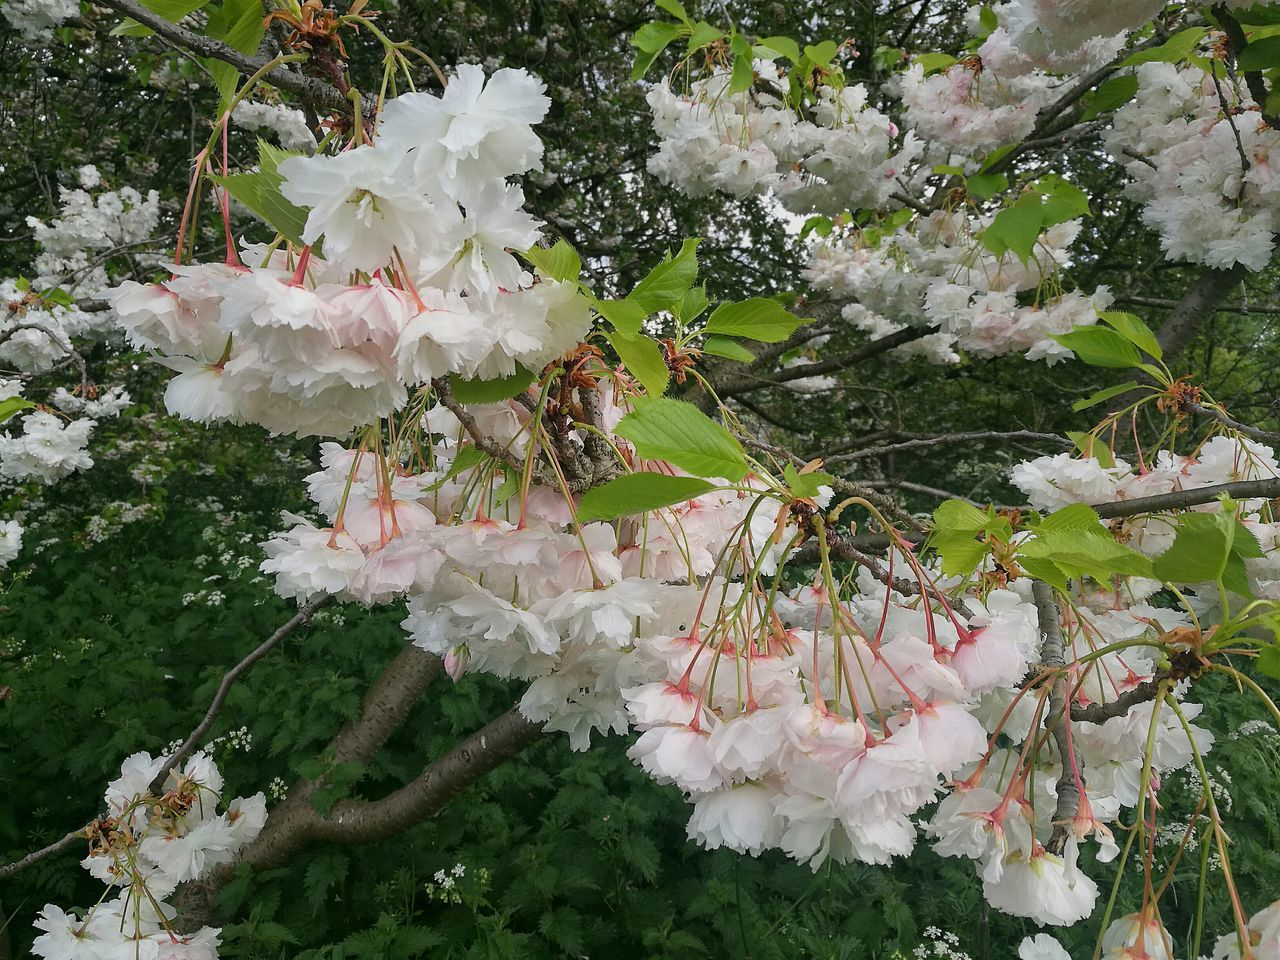 flower, growth, blossom, nature, white color, fragility, beauty in nature, spring, no people, plant, freshness, blooming, outdoors, day, tree, flower head, close-up